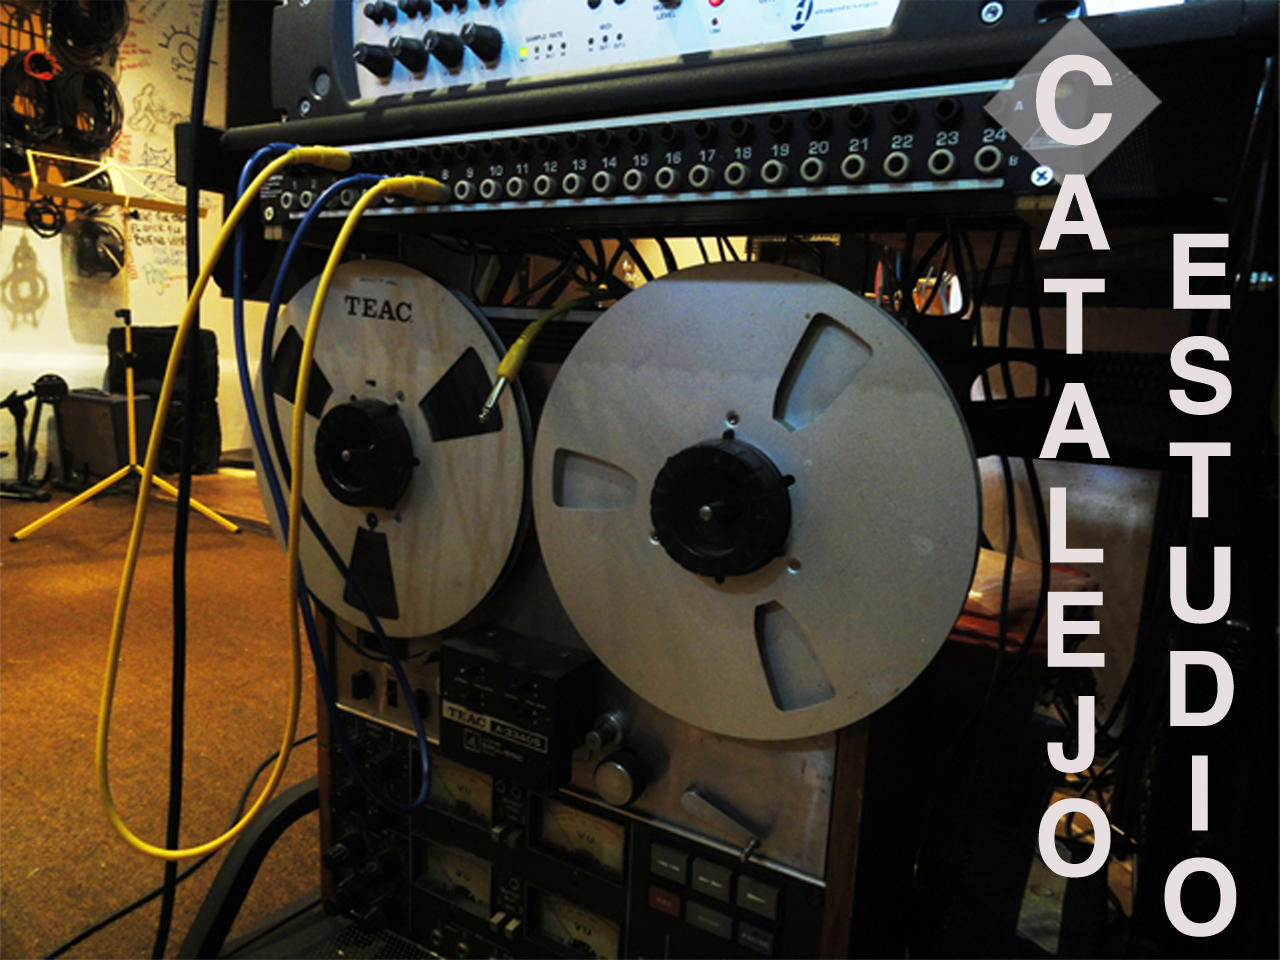 CATALEJO ESTUDIO